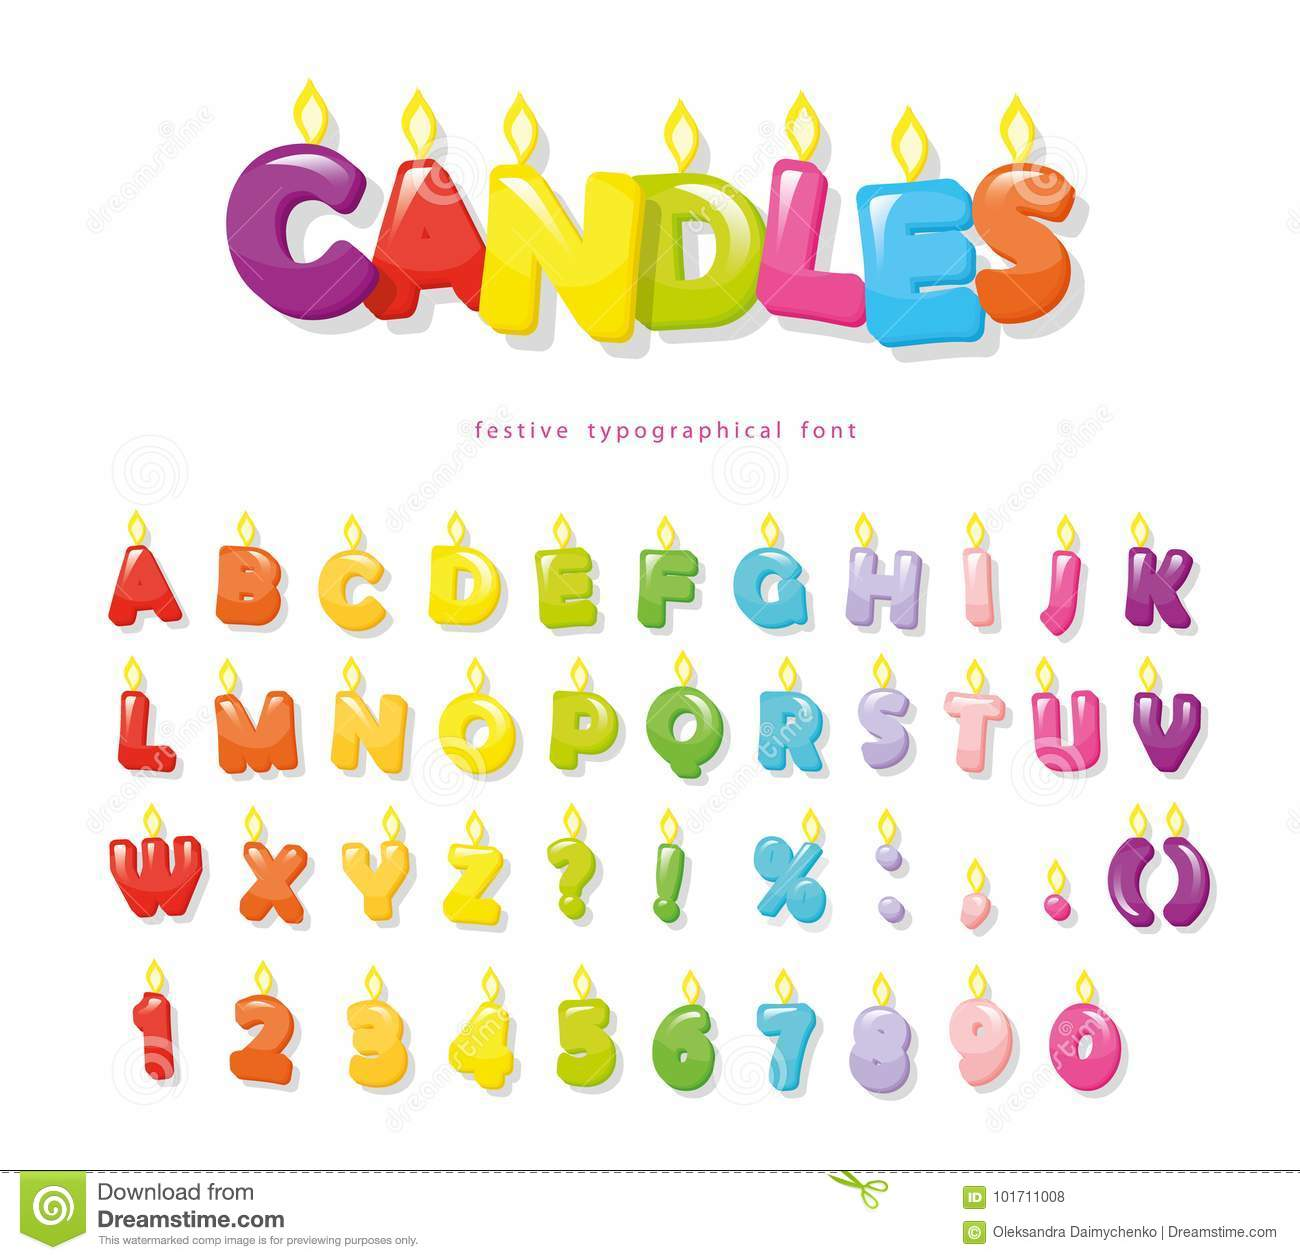 Candles Font Festive Cartoon Letters And Numbers For Birthday Or Other Design